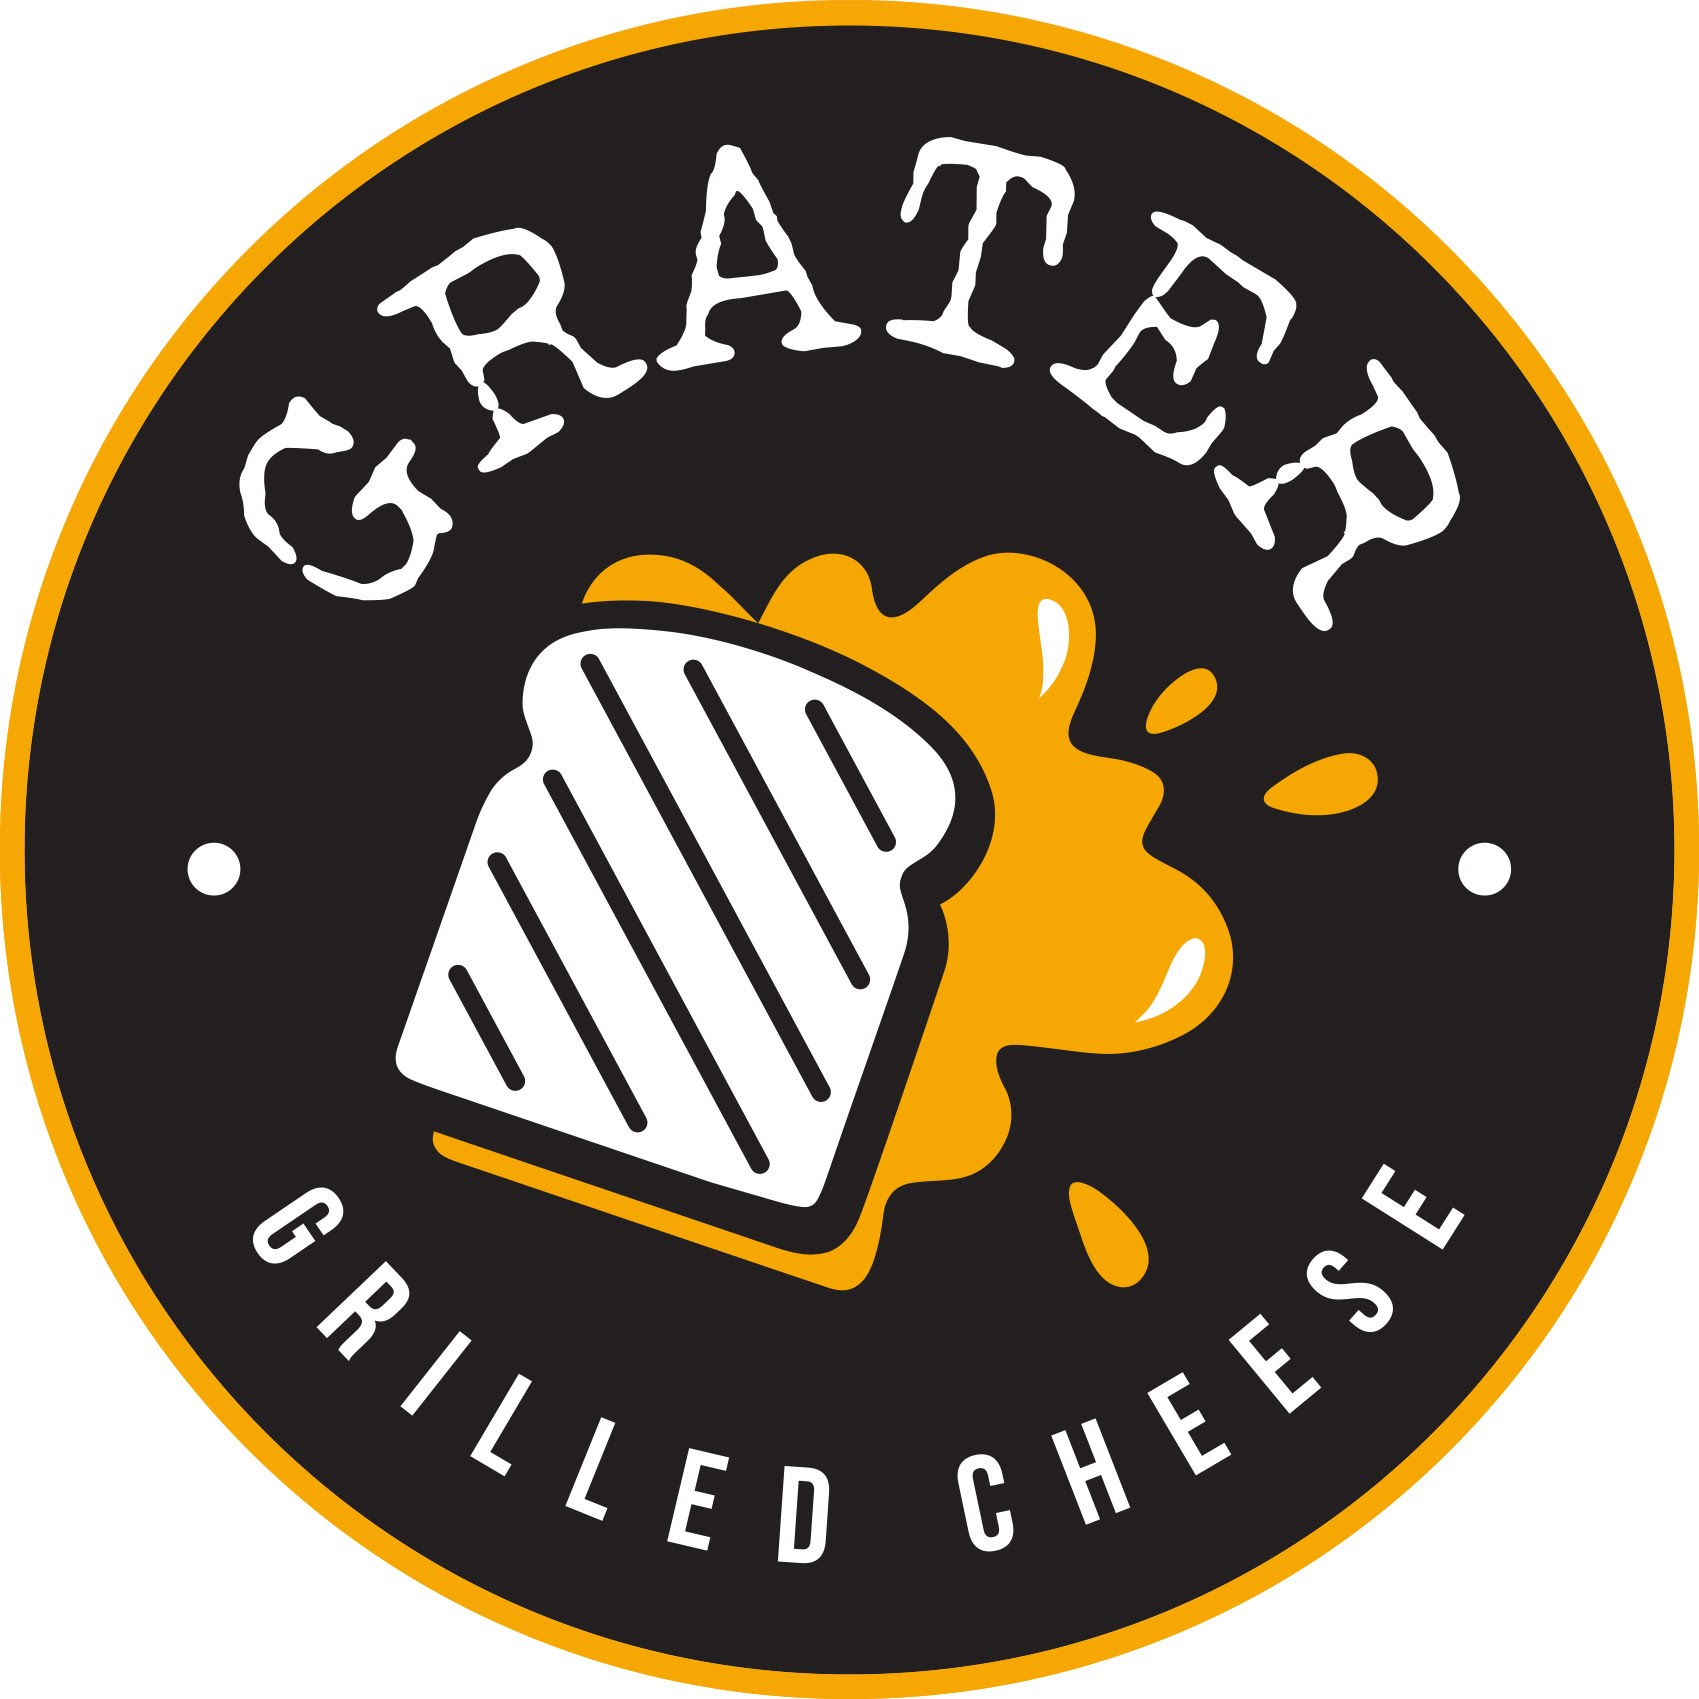 www.gratergrilledcheese.com